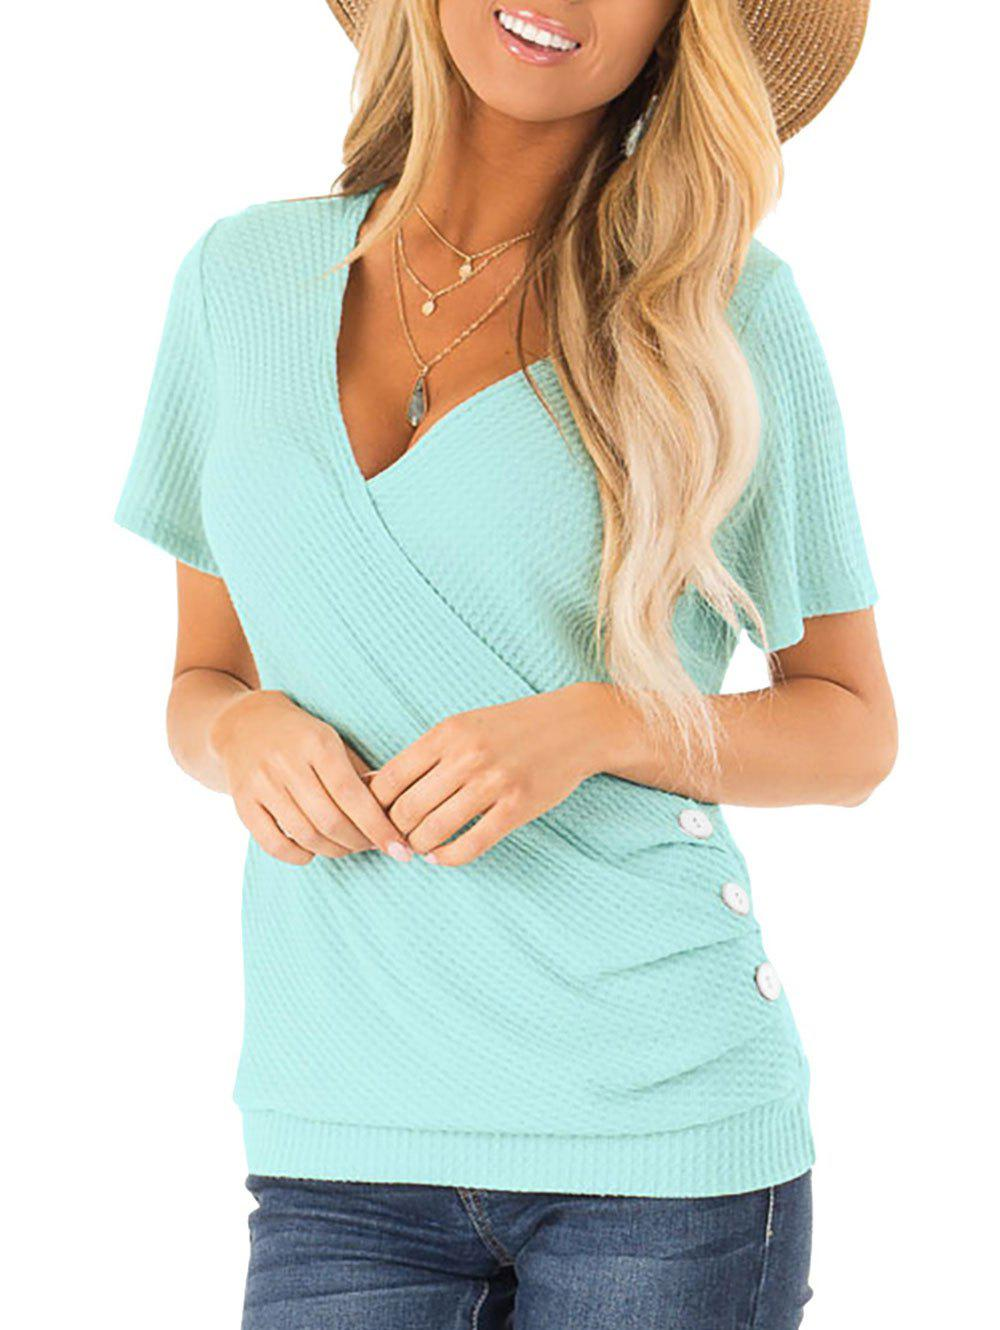 Chic Textured Low Cut Button Embellished T-shirt